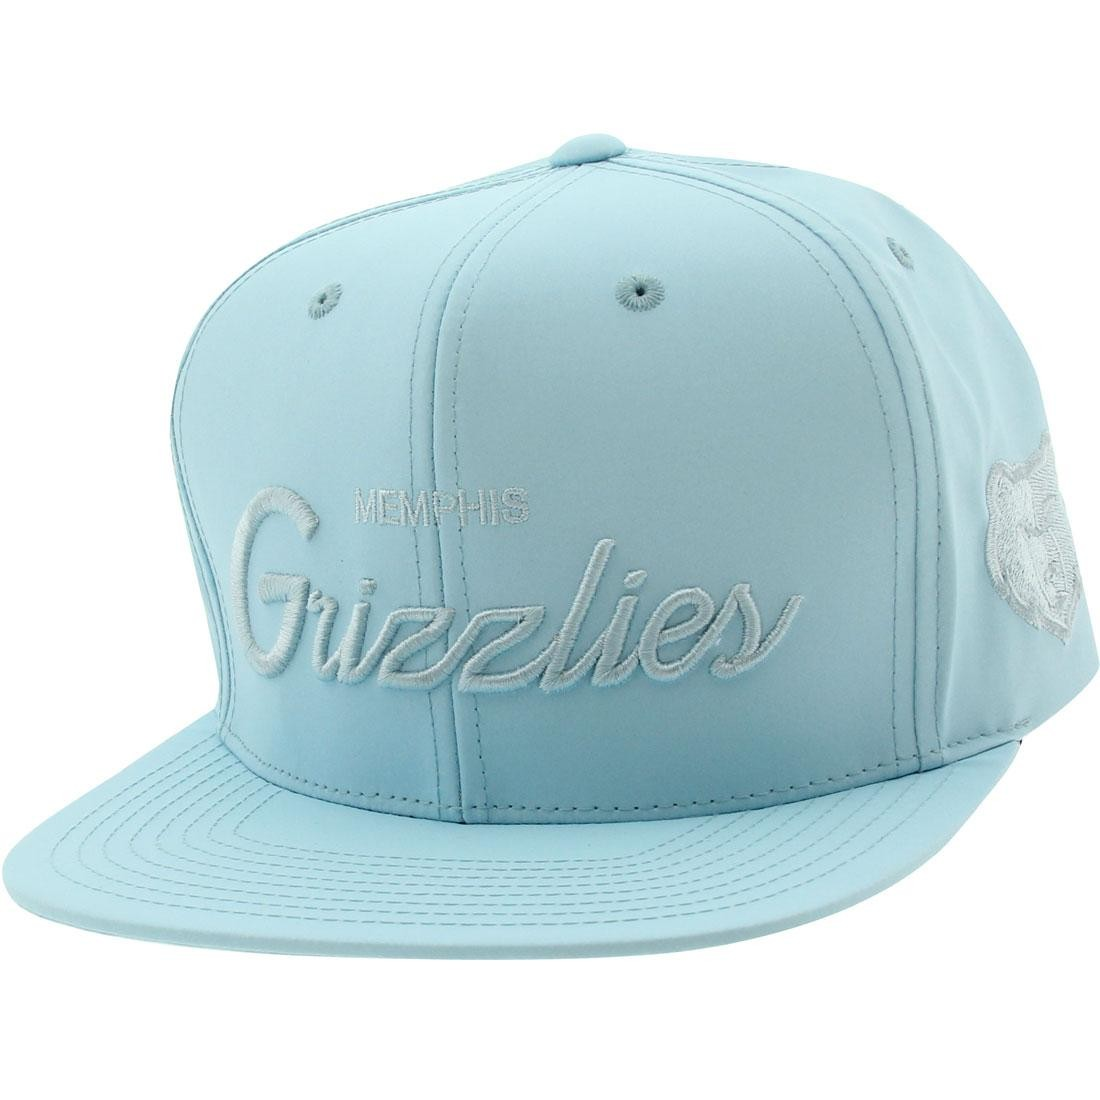 a0d515553aaa40 top quality mitchell and ness memphis grizzlies 3m crown snapback cap blue  light blue 685f2 4809c